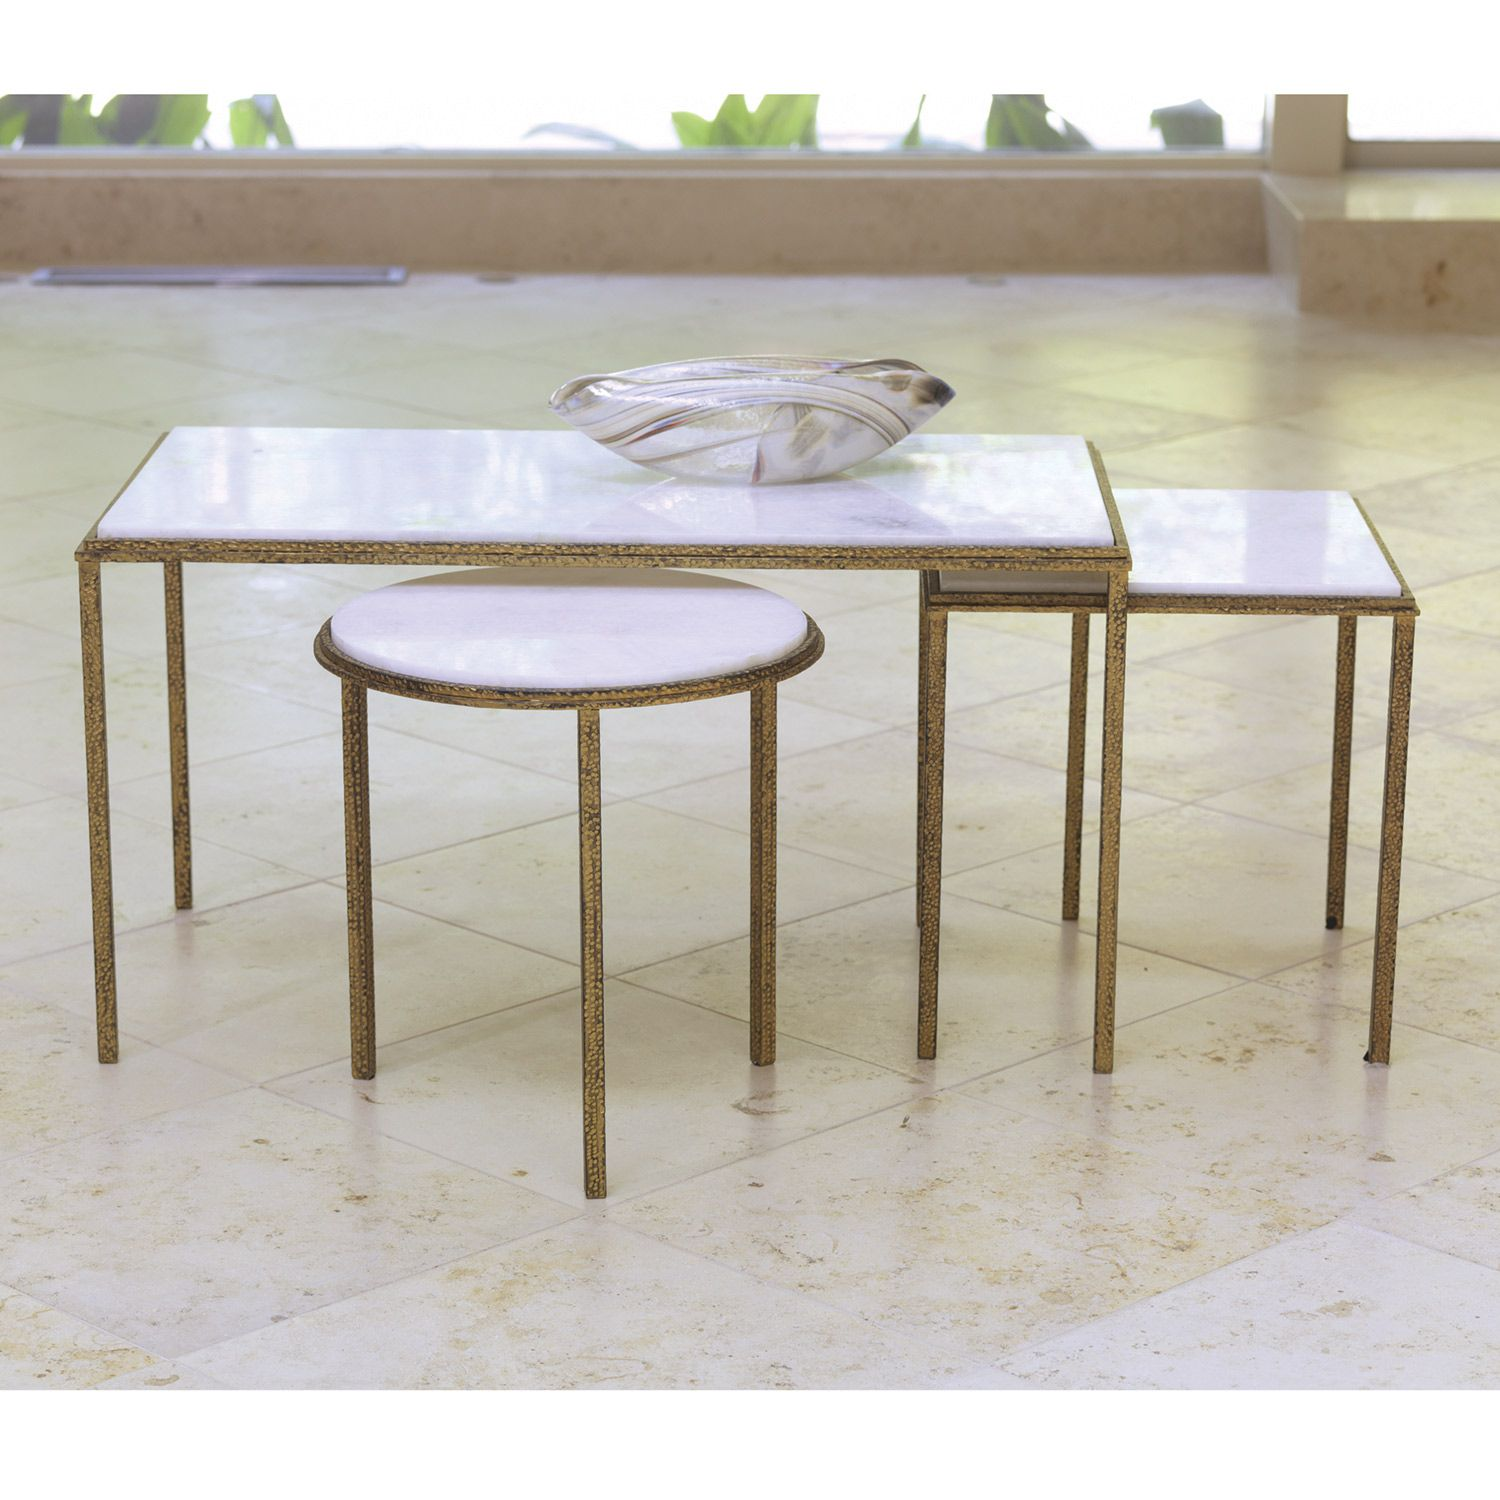 Designer Look For Less Gold Hammered Coffee Table Elizabeth Burns Design Raleigh Nc Interior Designer Hammered Coffee Table Round Gold Coffee Table Coffee Table [ 1296 x 750 Pixel ]